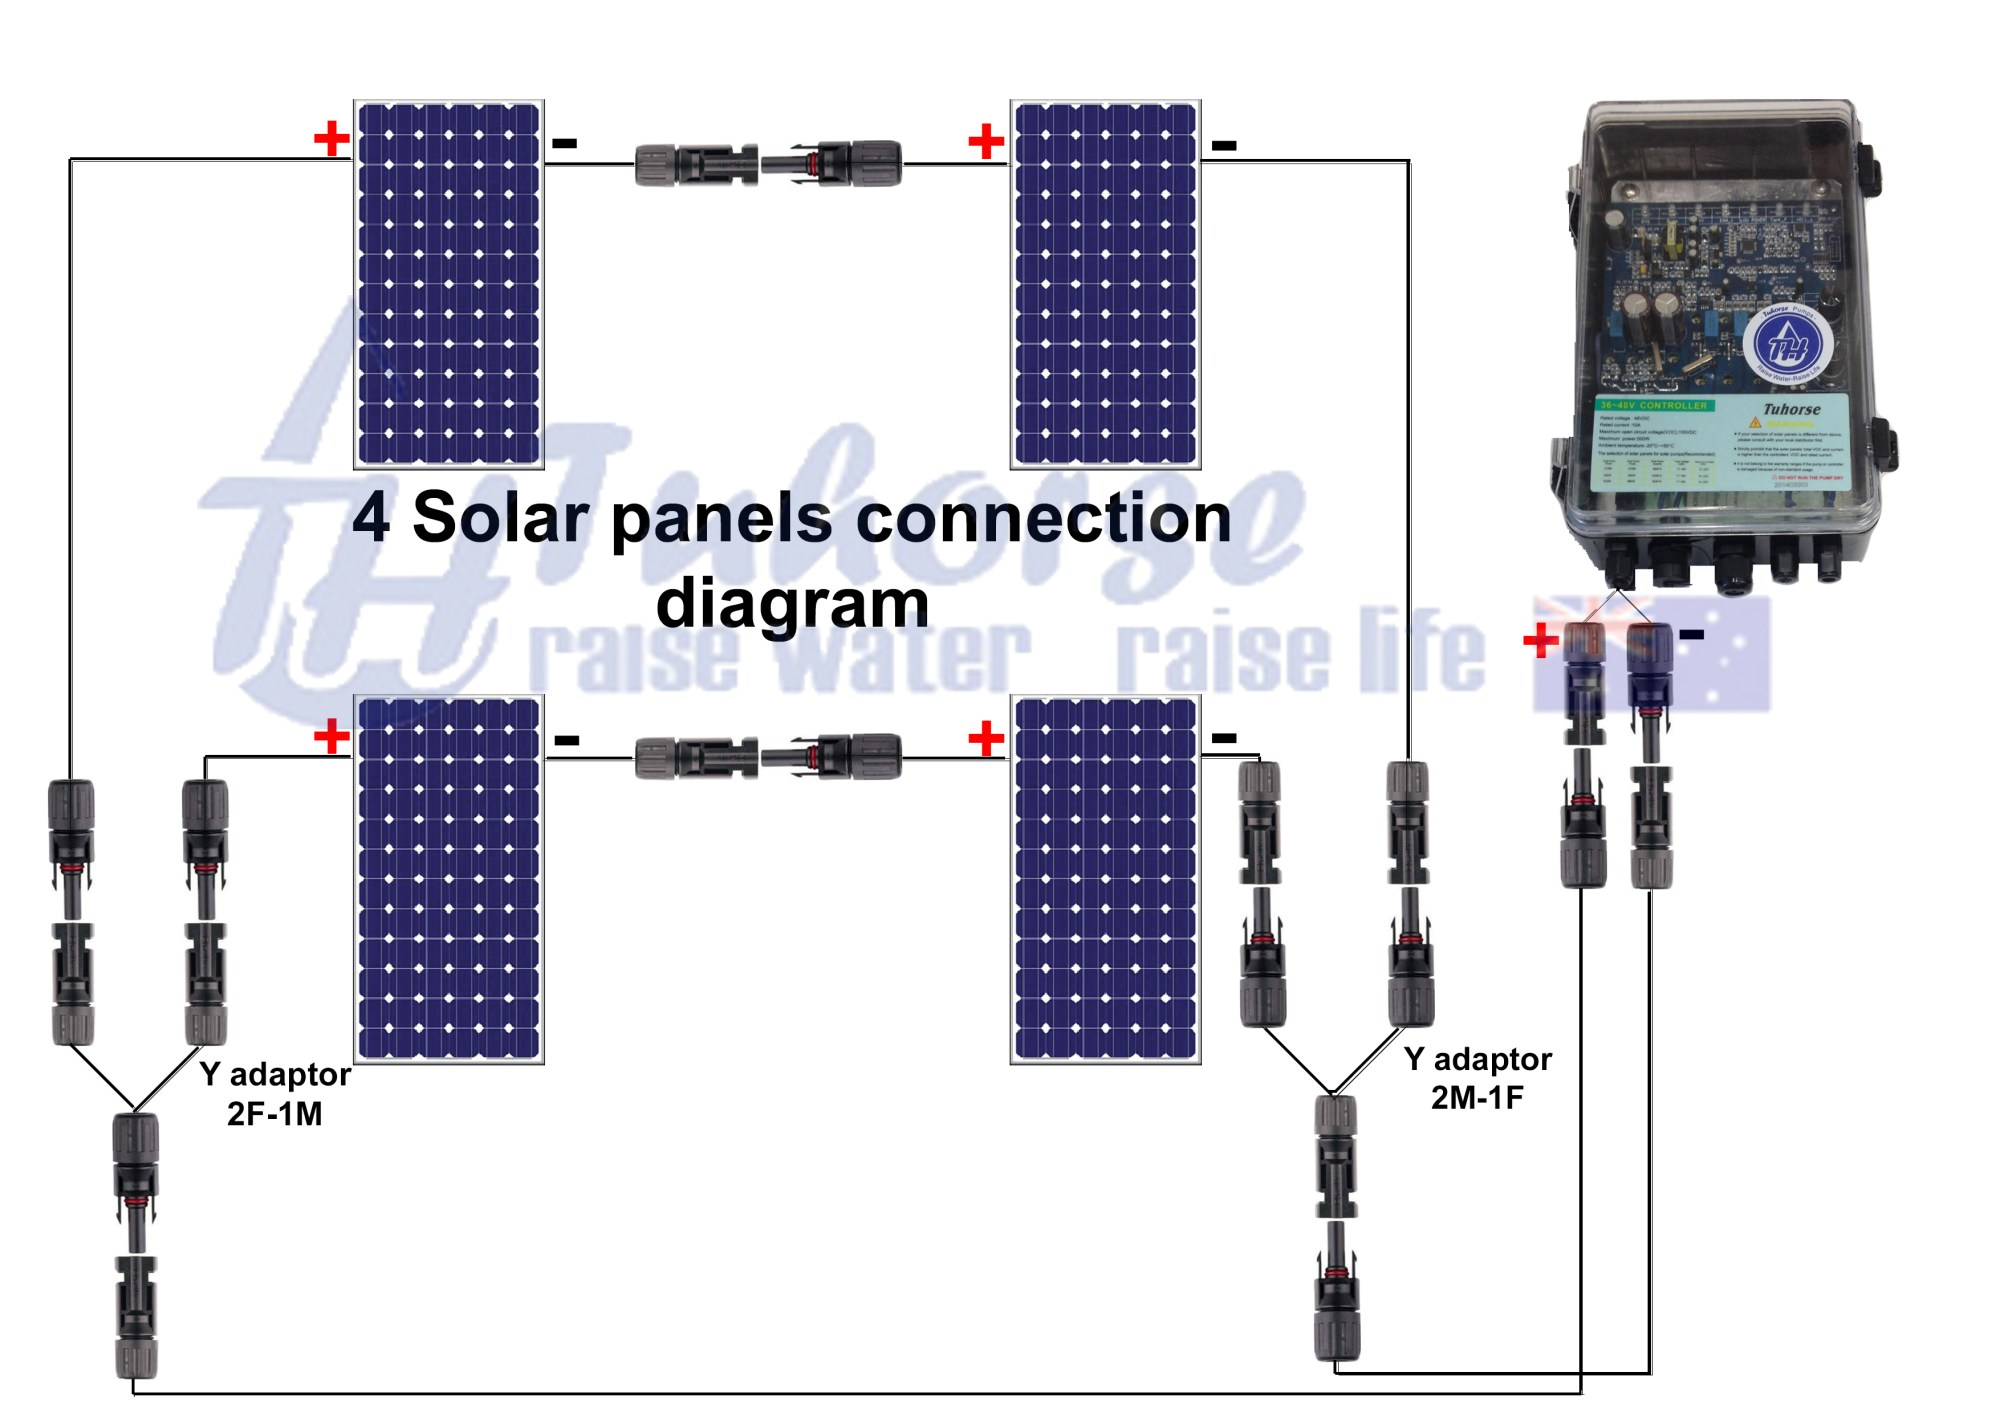 hight resolution of 5m amp rv solar panel installation wiring diagram 49 wiring diagram for solar panels in parallel wiring diagram 24v solar panels